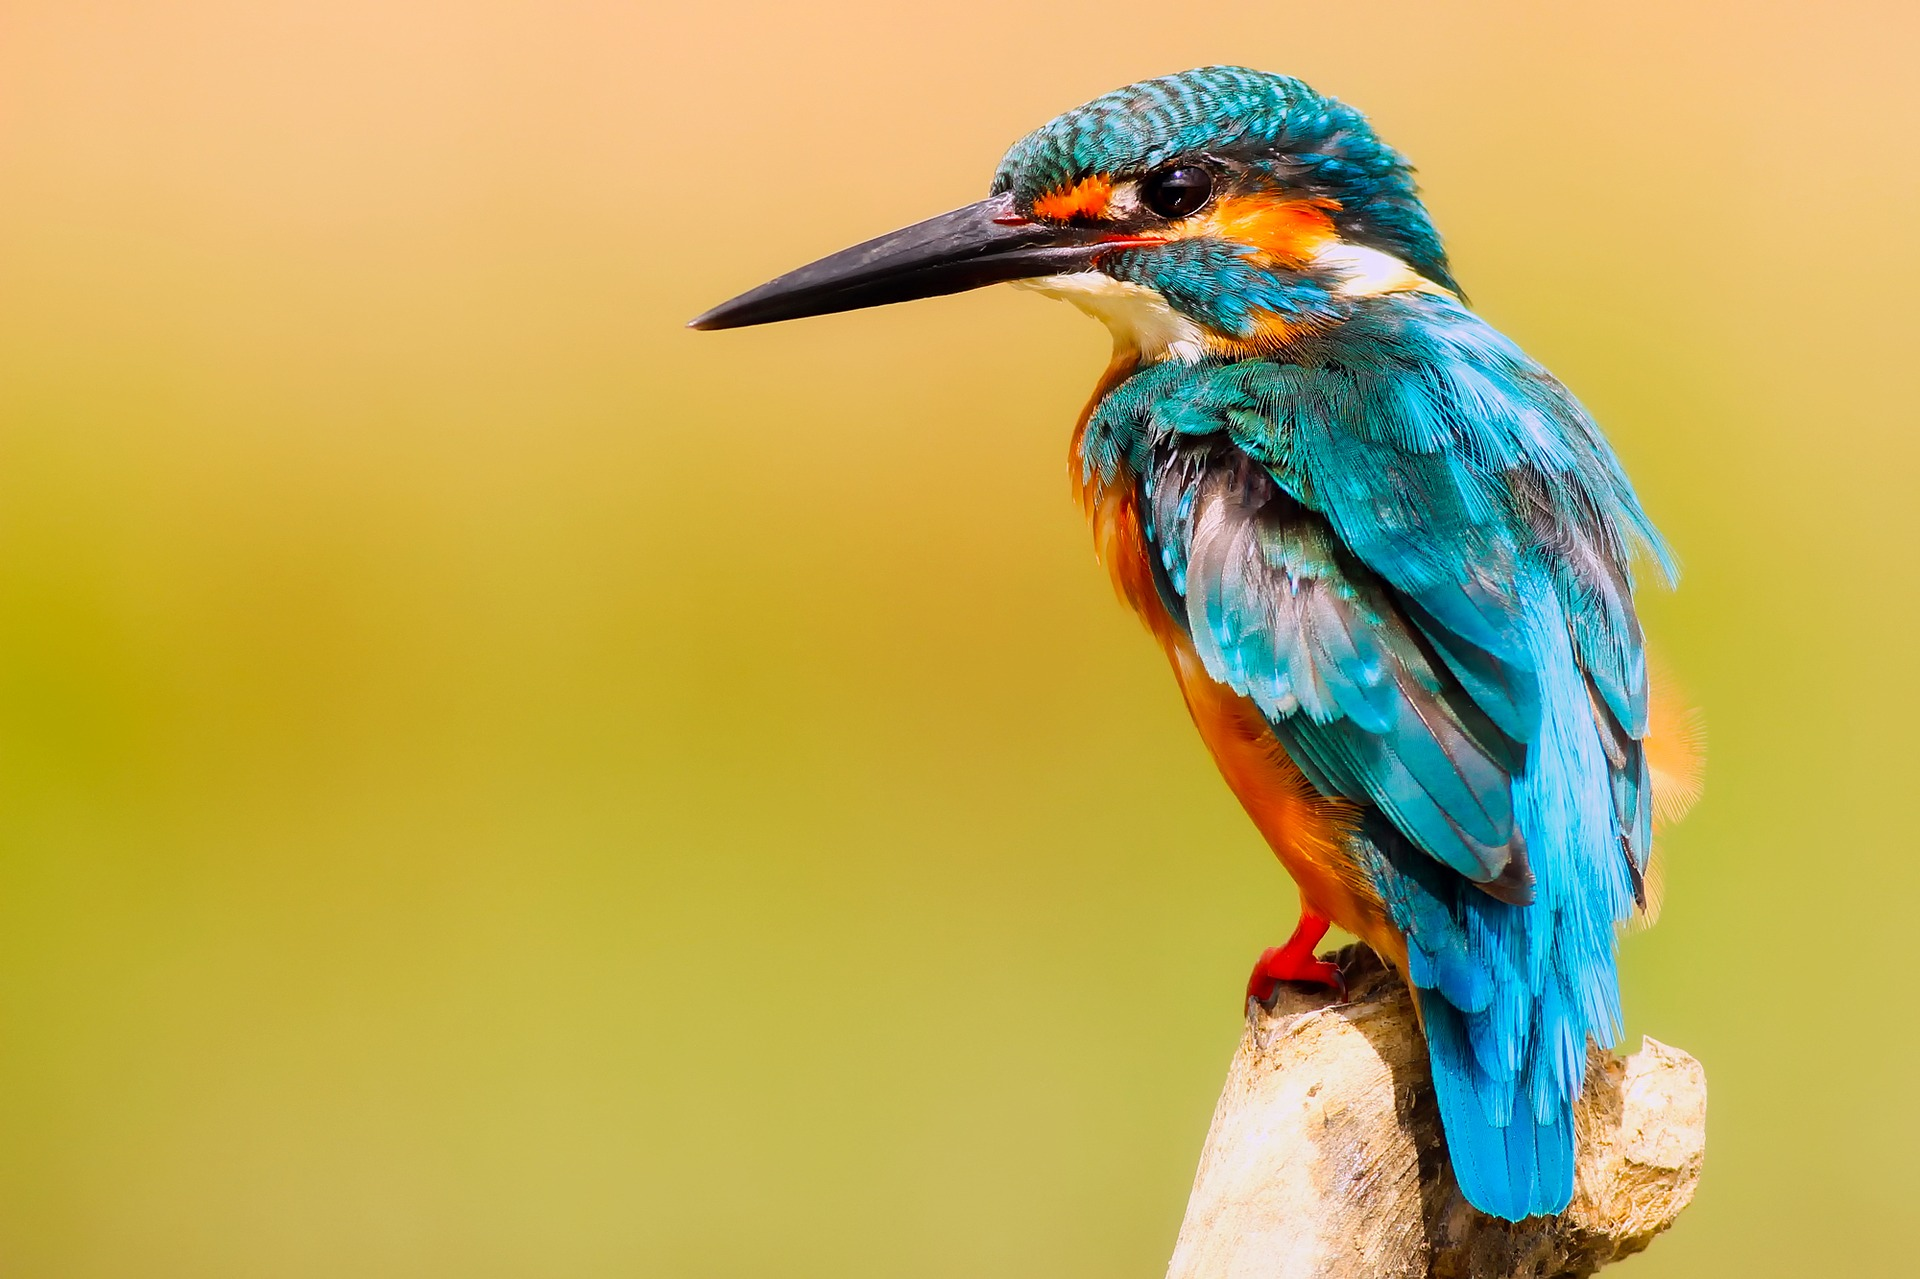 Photograph of a kingfisher